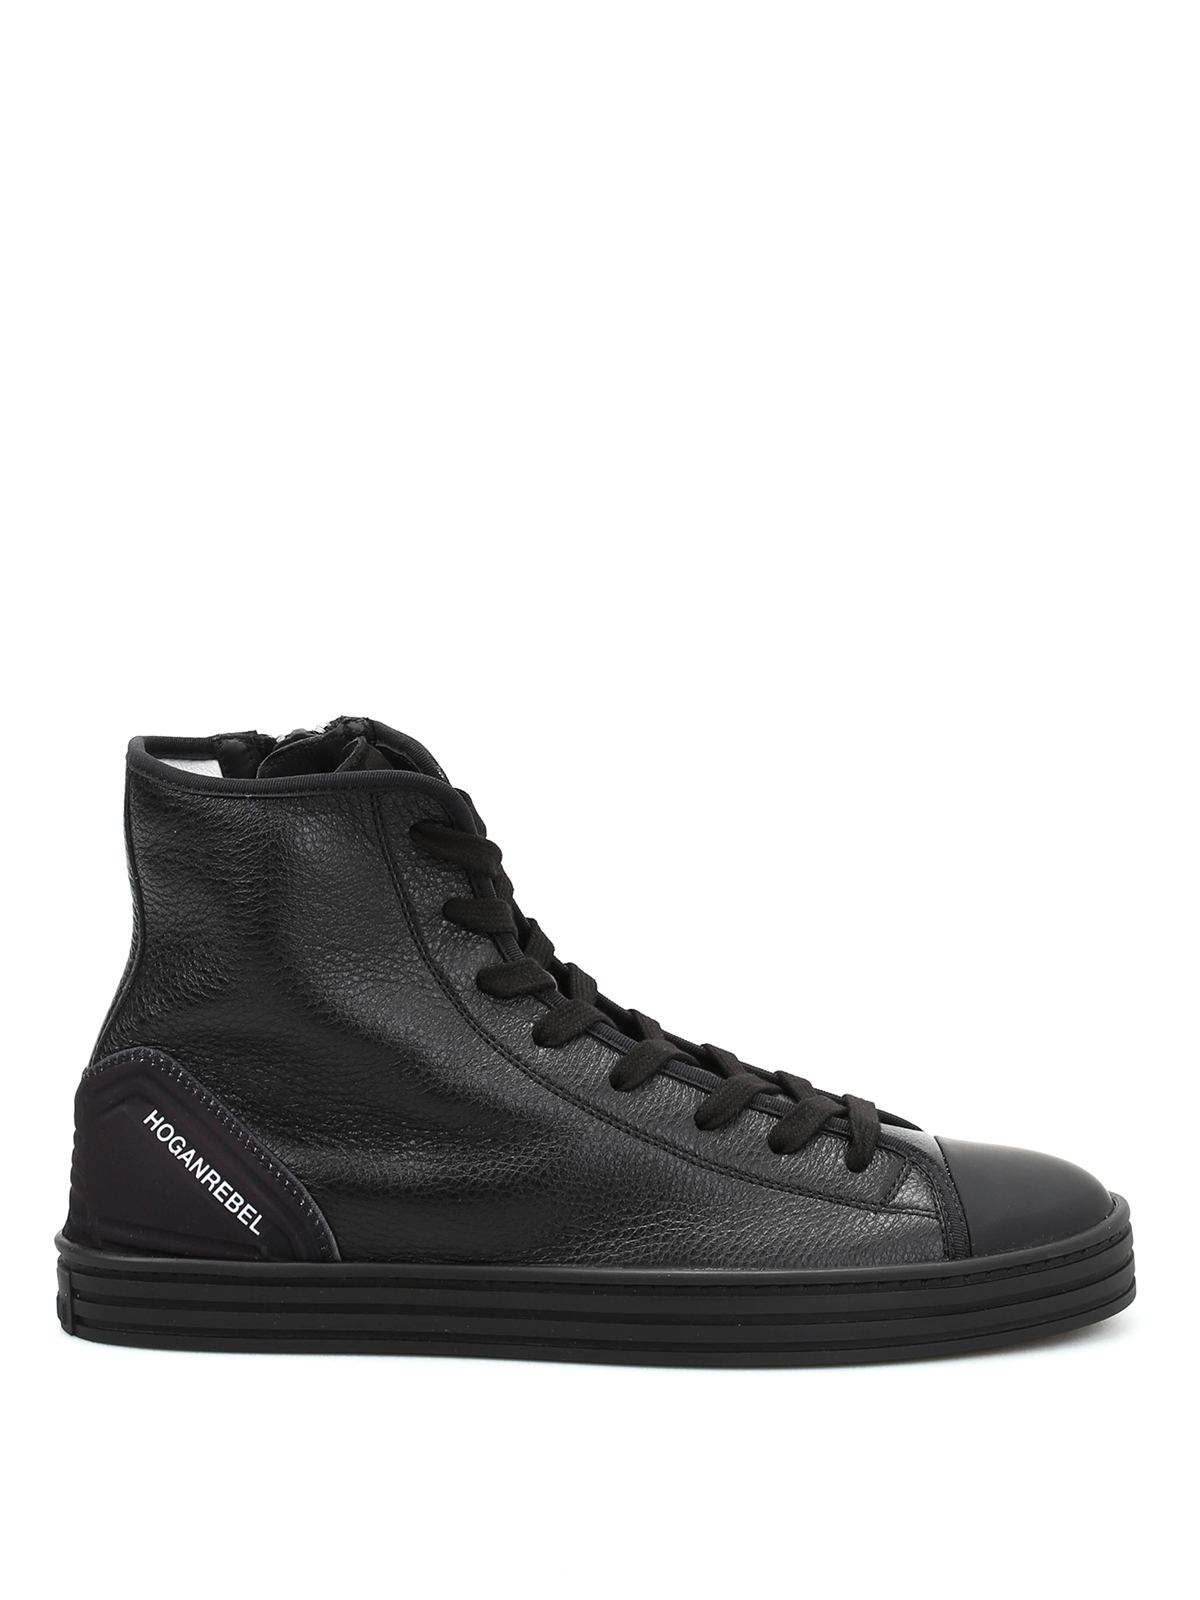 Hogan Rebel: Zapatillas online - Zapatillas De Deporte R141 - Negro